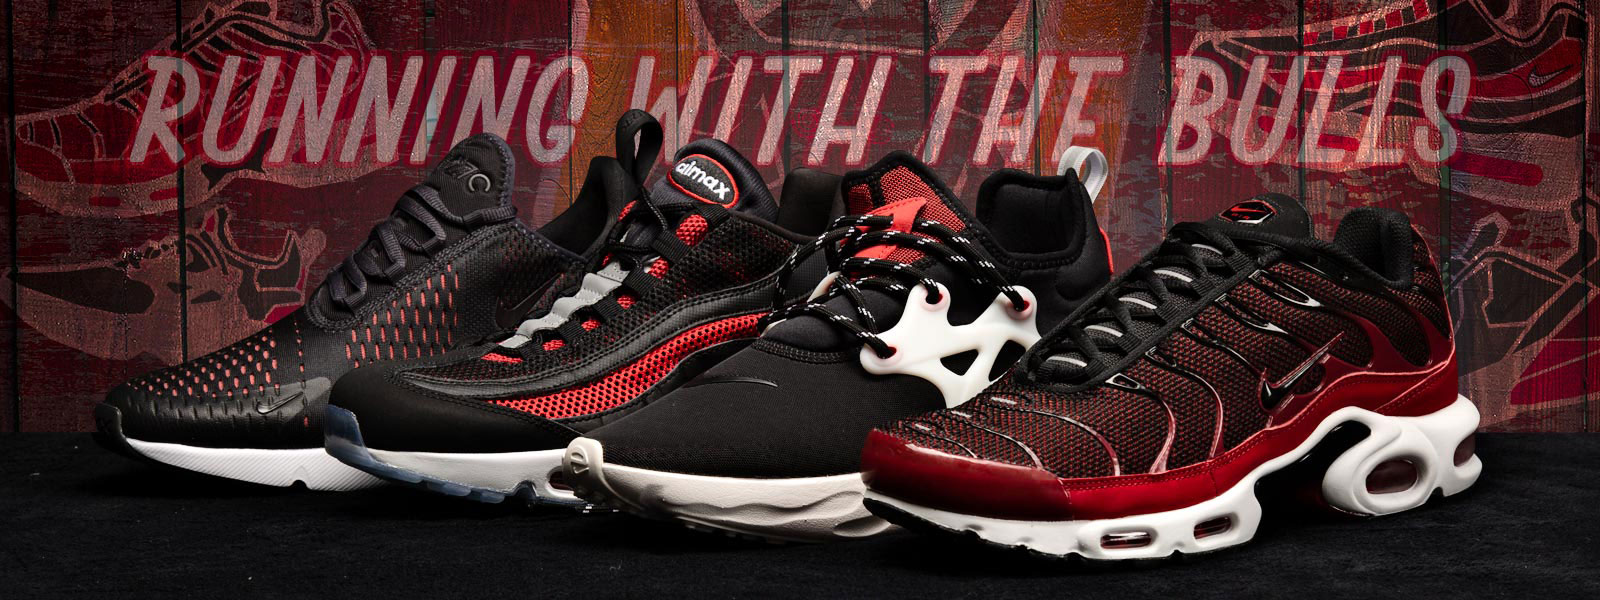 nike-air-running-with-bulls-bred-sneakers